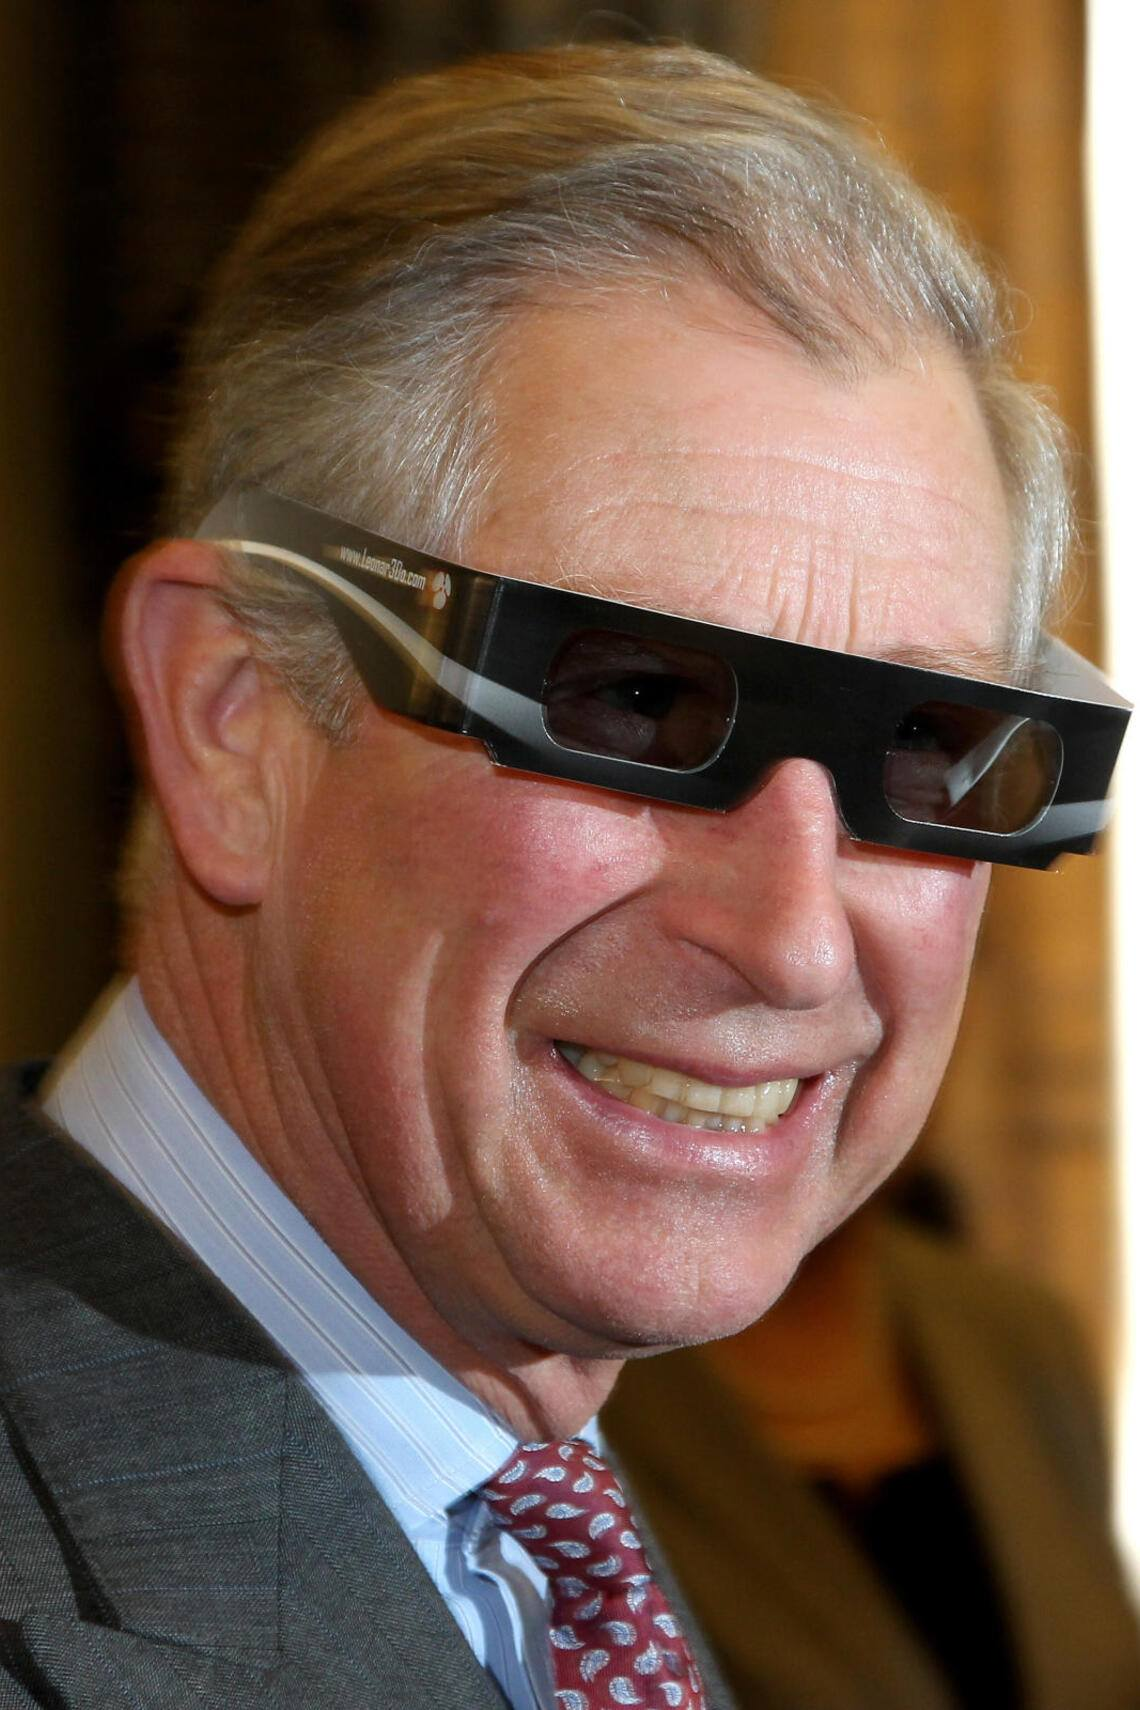 BUDAPEST, HUNGARY - MARCH 18: Prince Charles, Prince of Wales wears 3D glasses as he visits the Hungarian Academy of Sciences on March 18, 2010 in Budapest, Hungary. Prince Charles, Prince of Wales and Camilla, Duchess of Cornwall are on a three day trip to Hungary as part of a tour of Eastern Europe that takes in Poland, Hungary and the Czech Republic. (Photo by Chris Jackson/Getty Images)